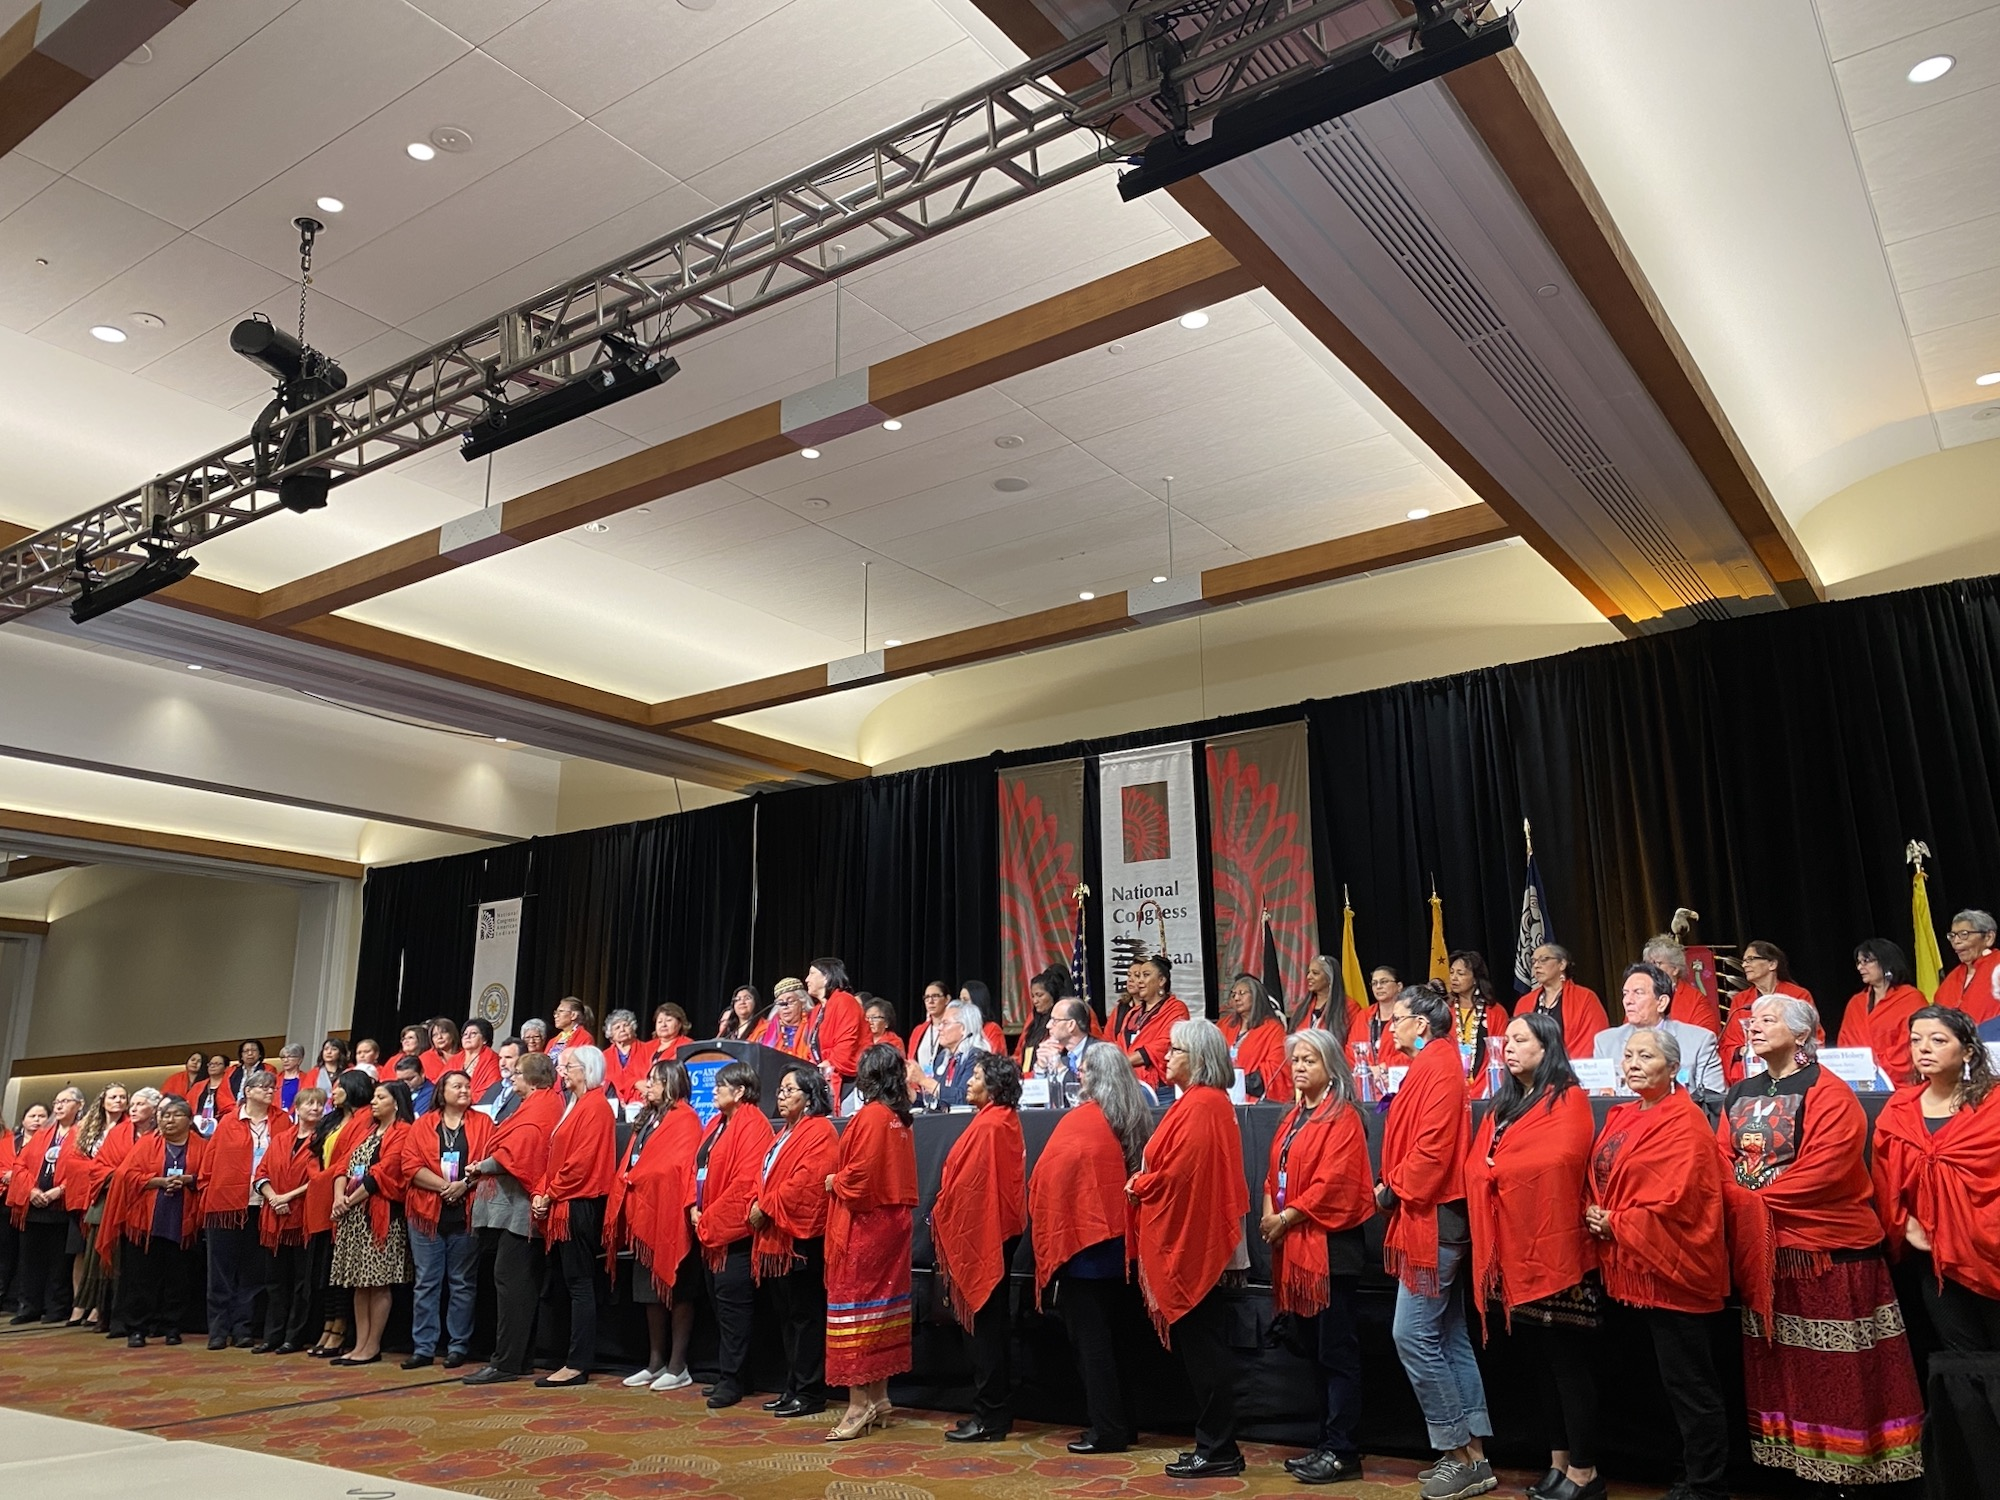 RECAP: National Congress of American Indians annual convention #NCAIAnnual19